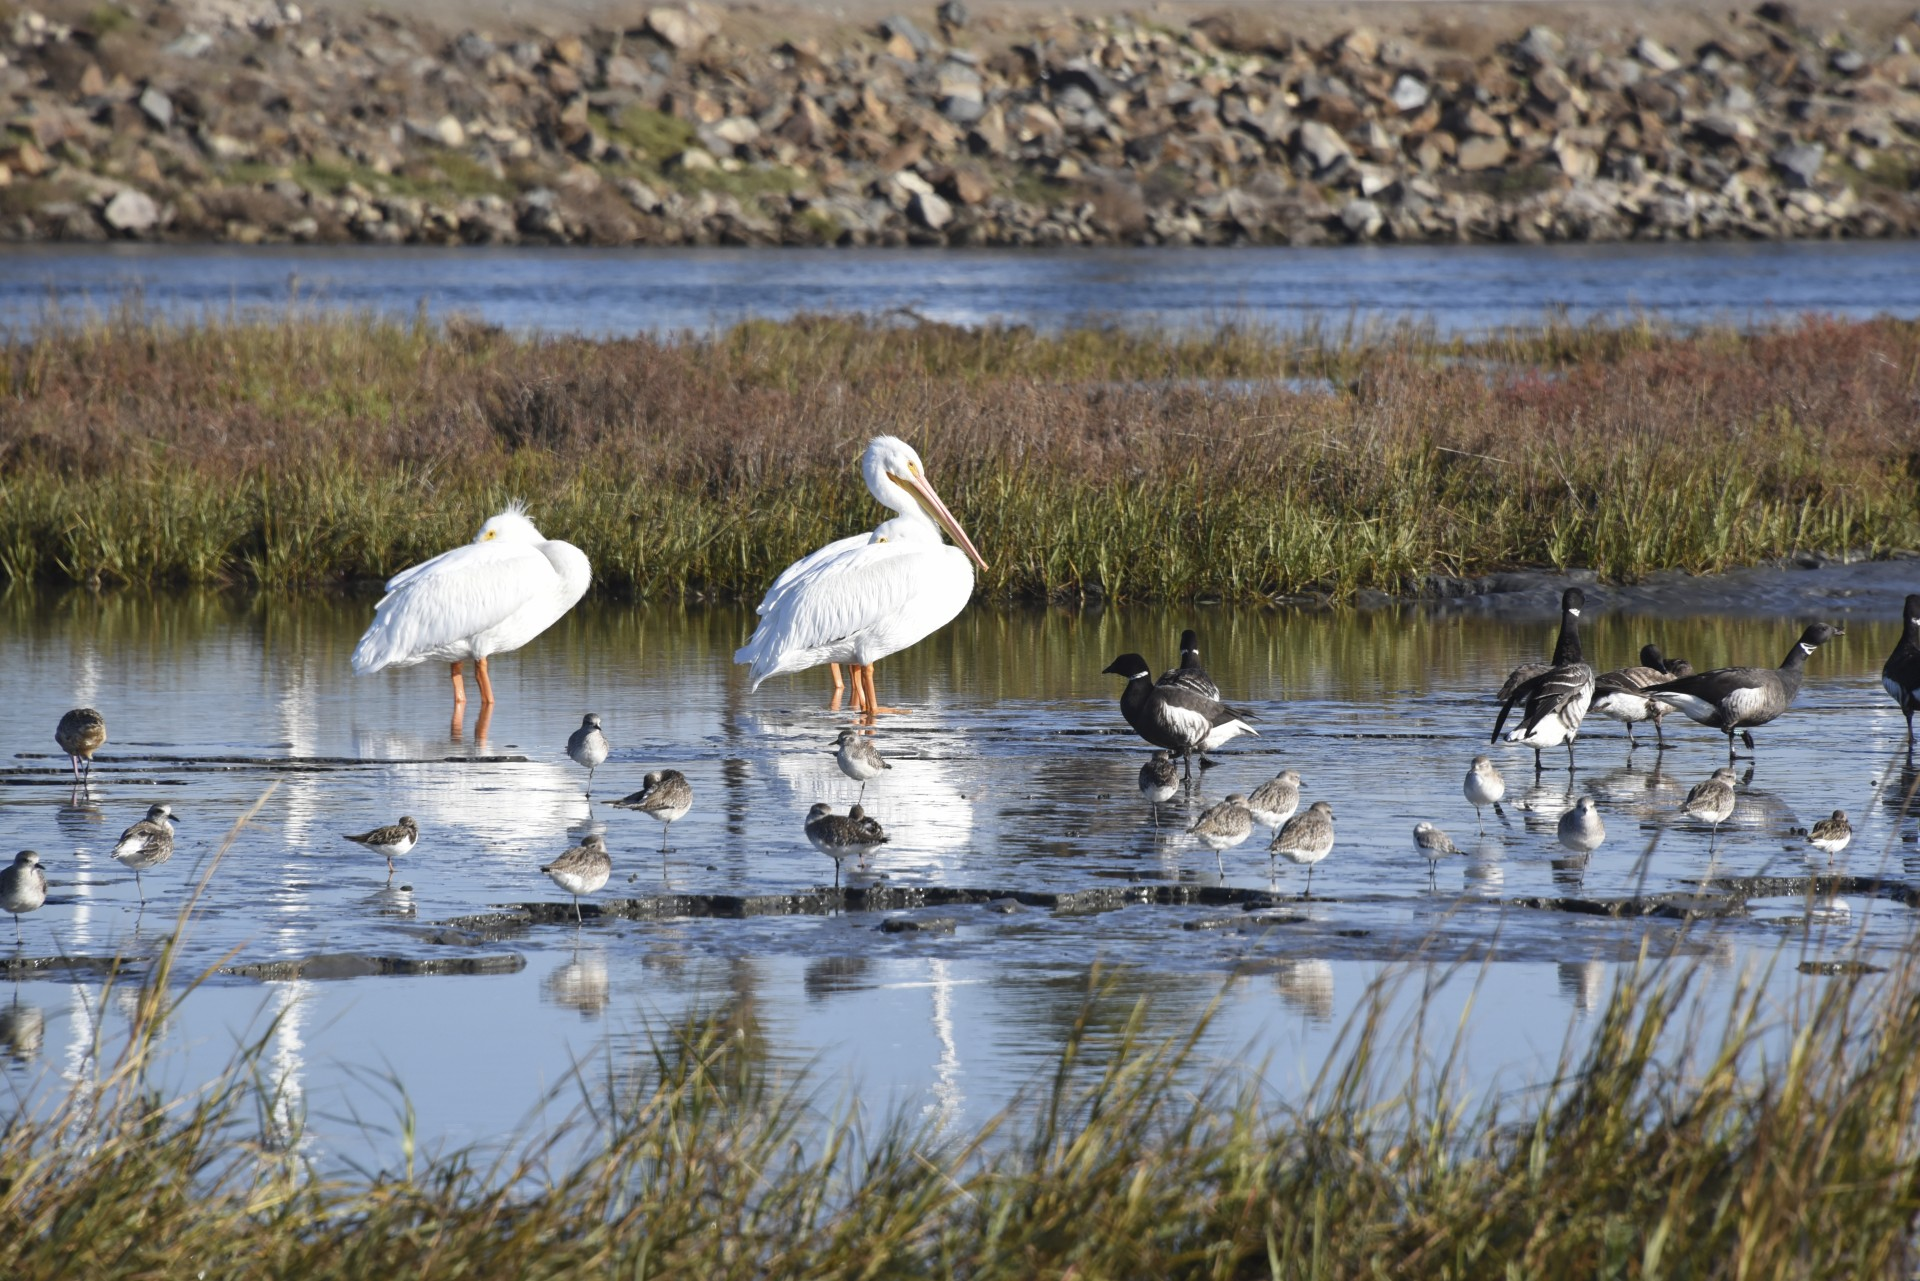 Protecting Our Fish and Birds by Protecting Their Wetland Homes